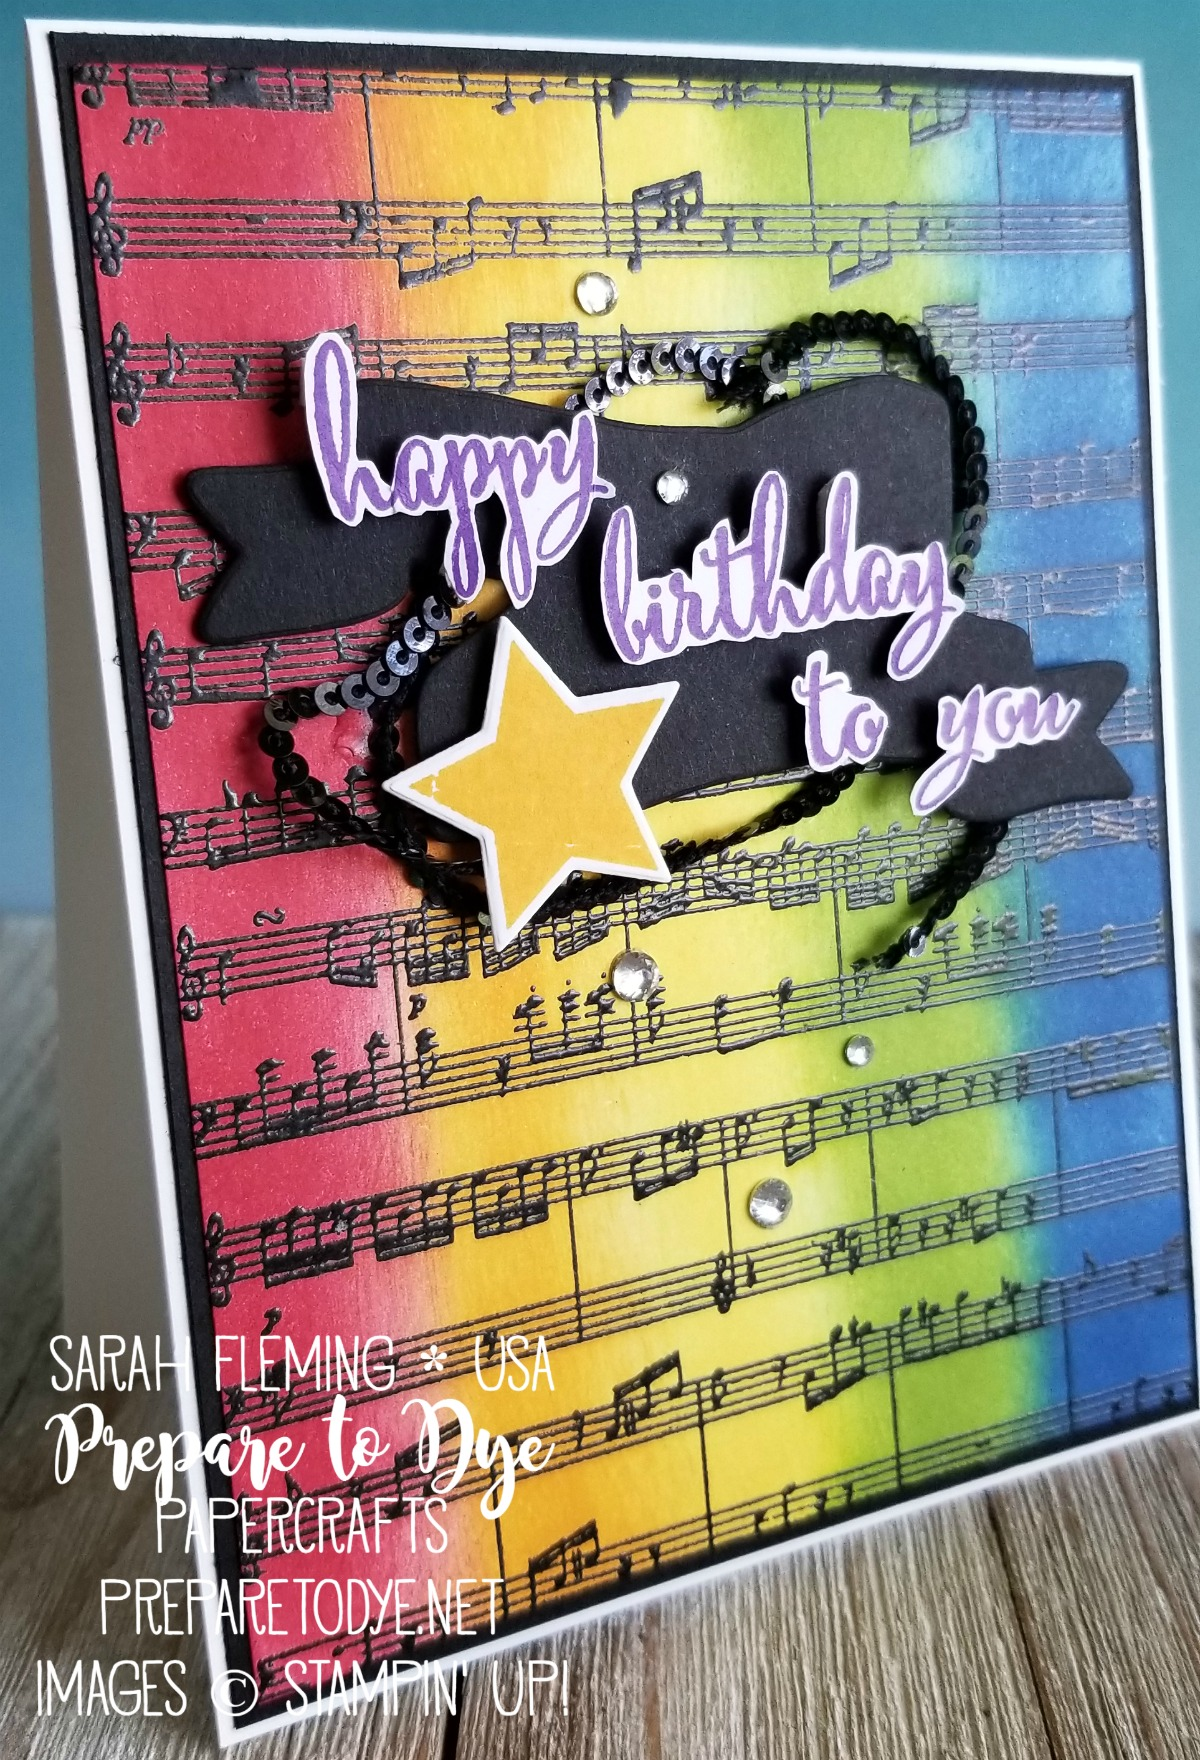 Stampin' Up! birthday card with Make A Difference, Sheet Music, Wood Words stamps, Bunch of Banners framelits, Wood Crate framelits - Sarah Fleming - Prepare to Dye Papercrafts